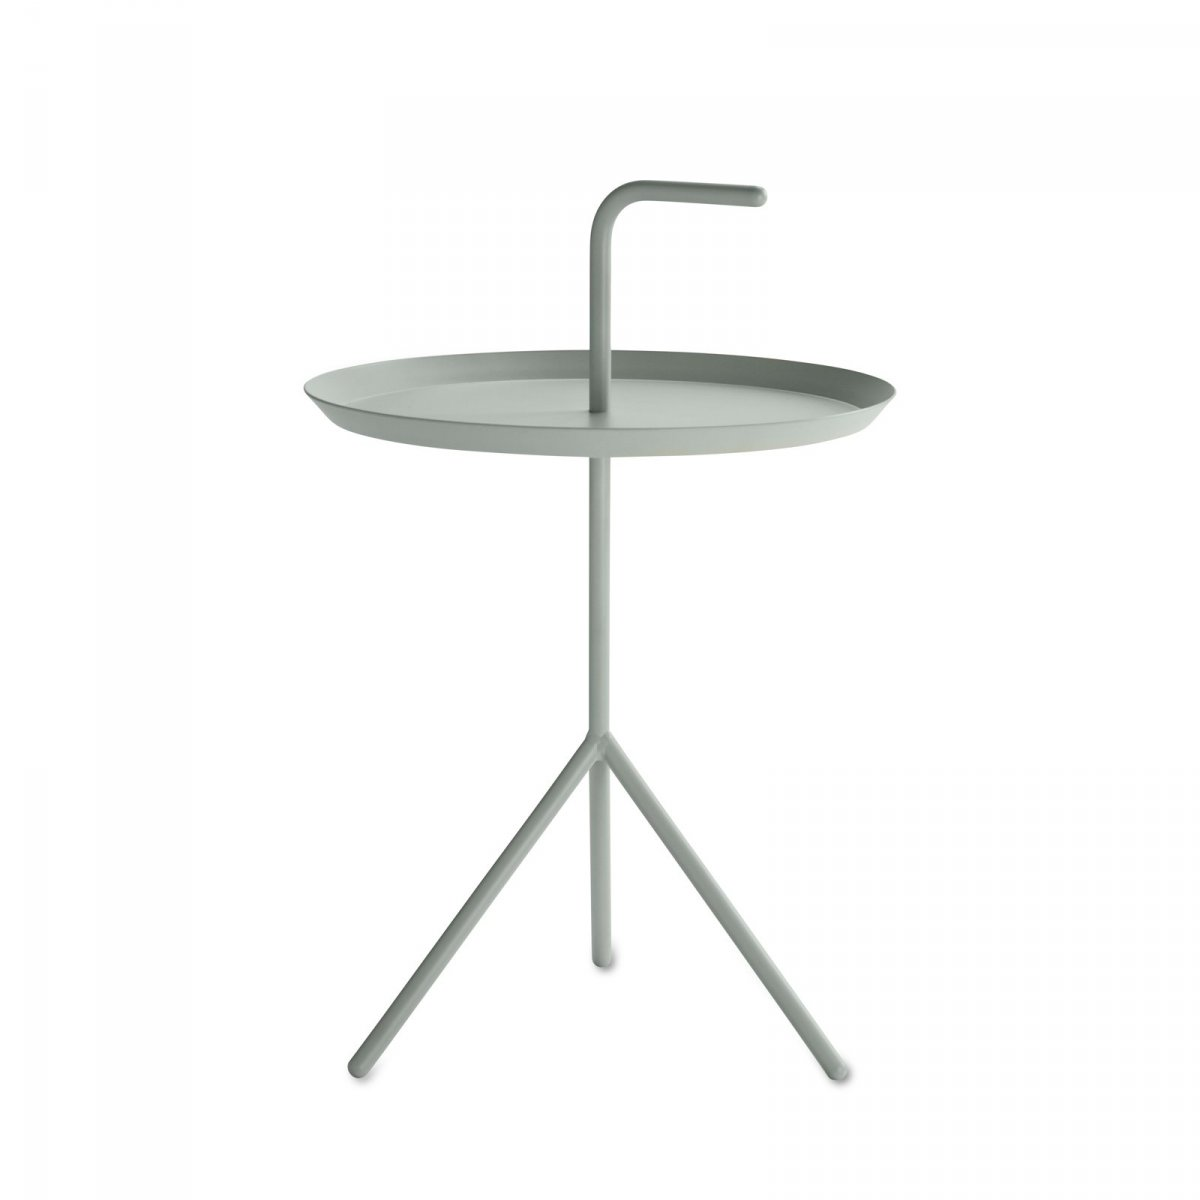 DLM side table, mint.